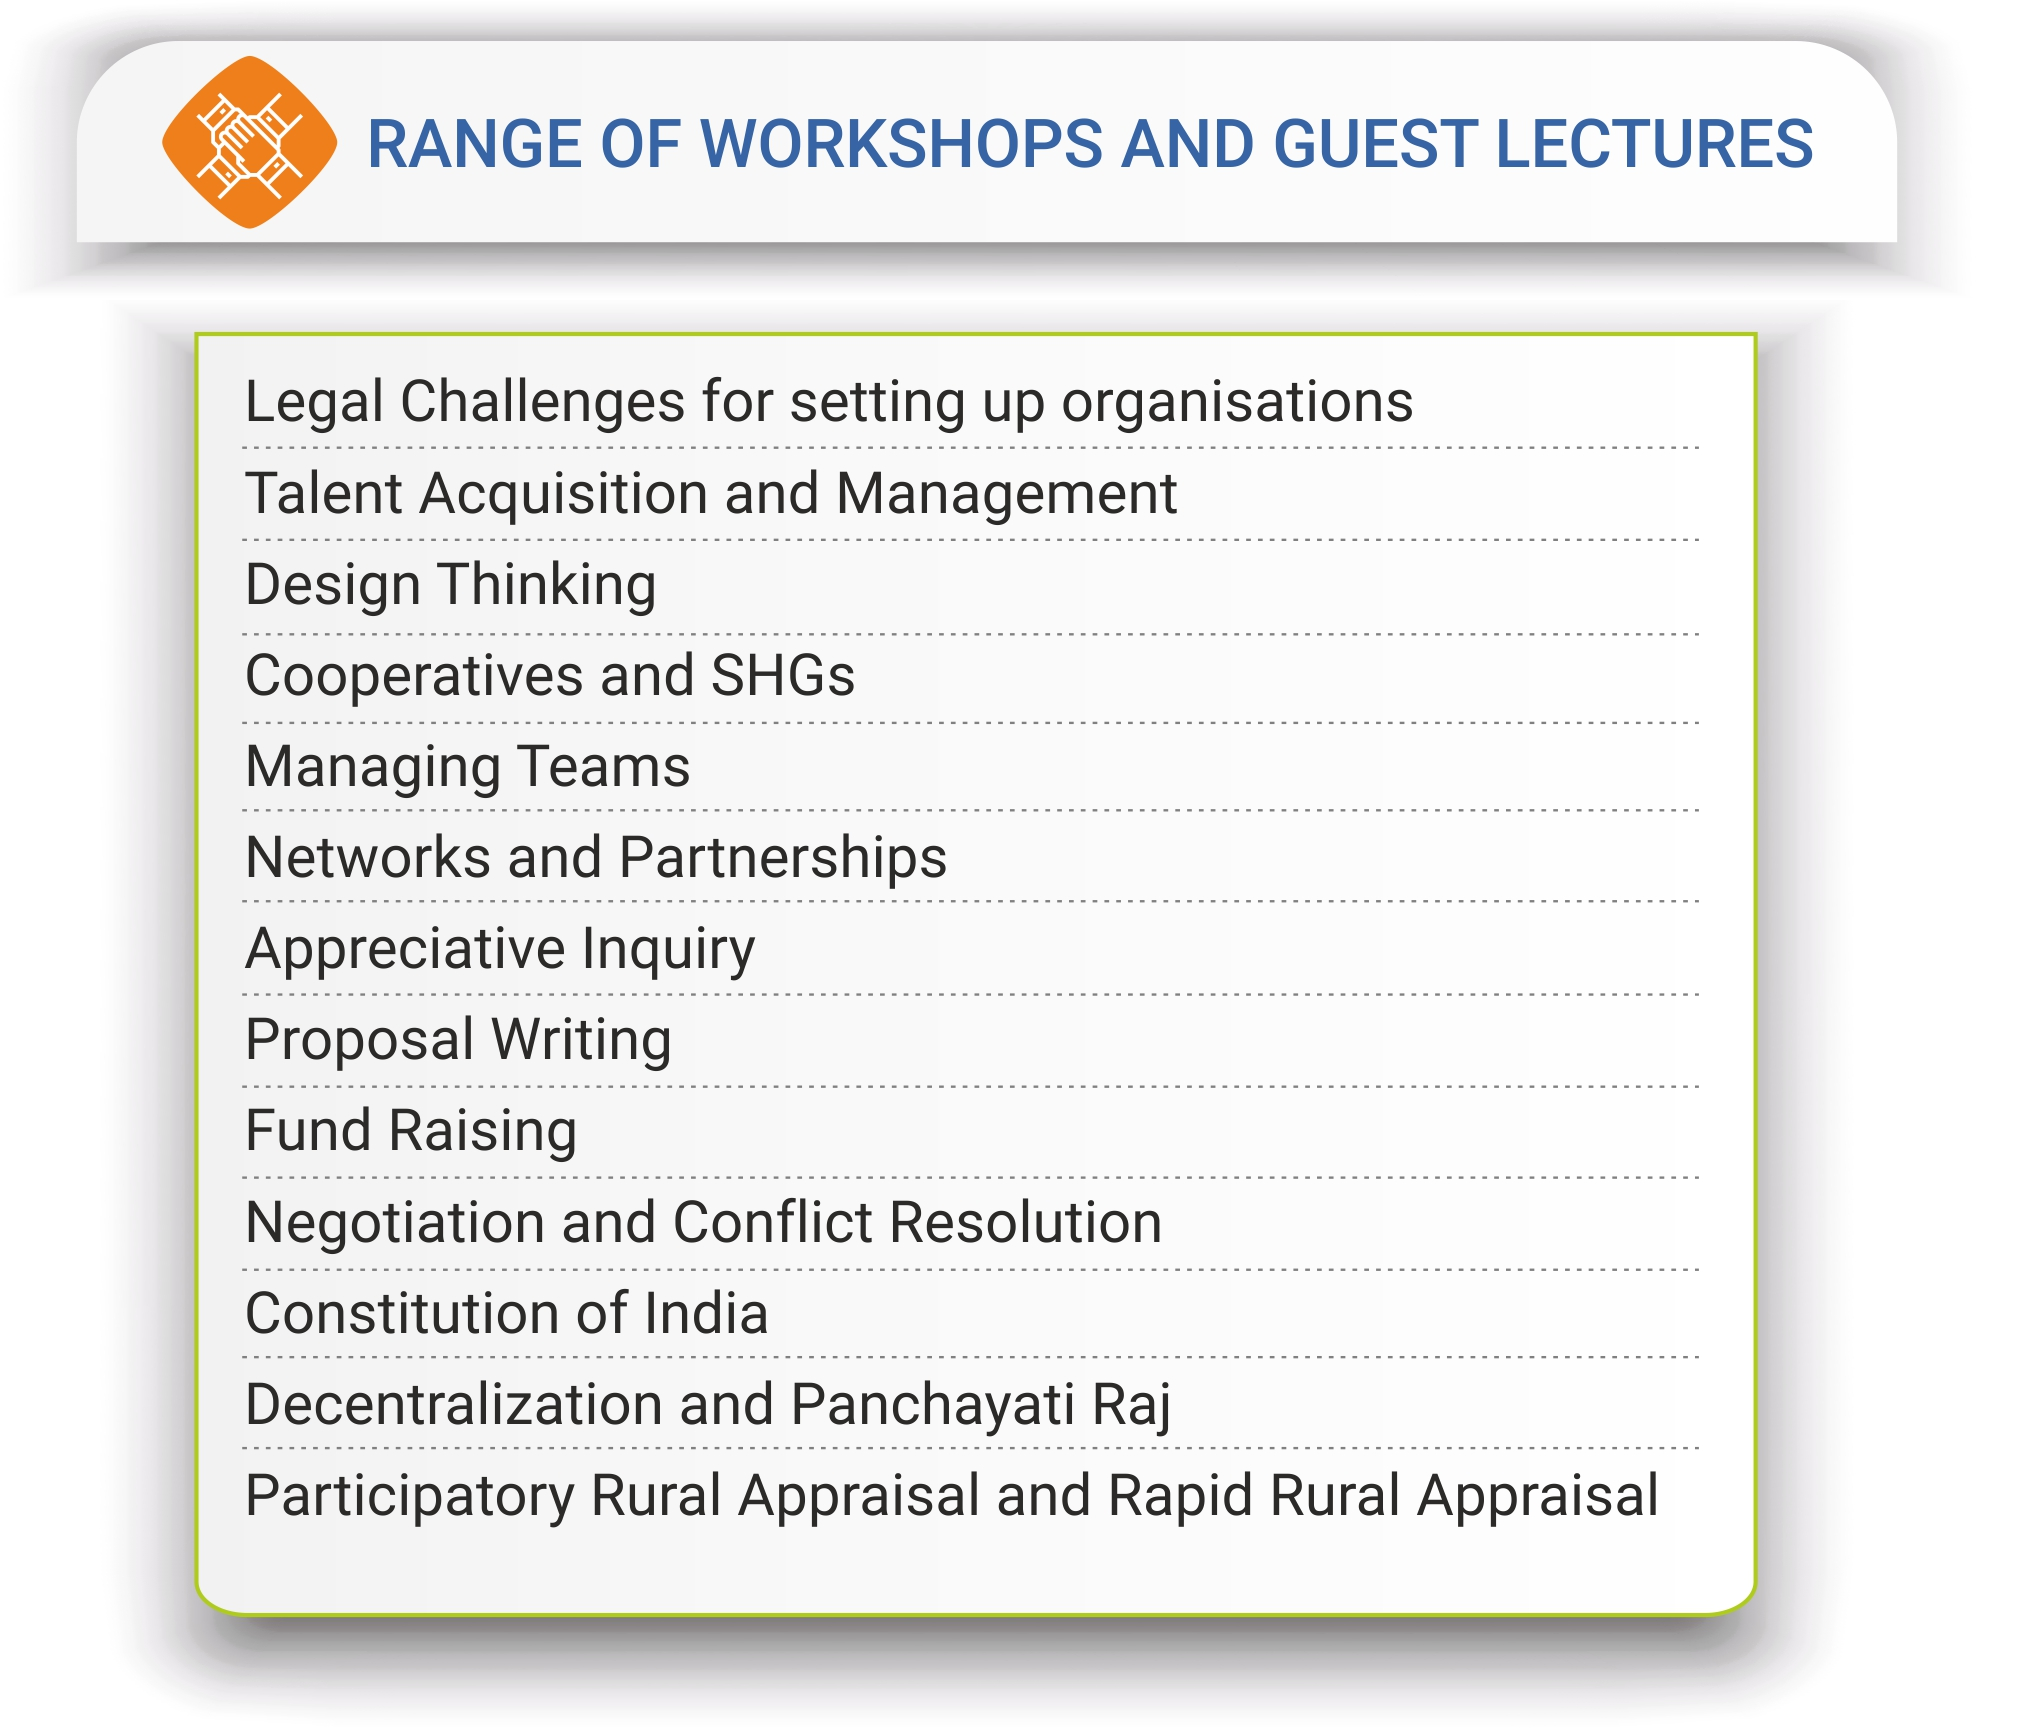 Range of Workshops and Guest lectures